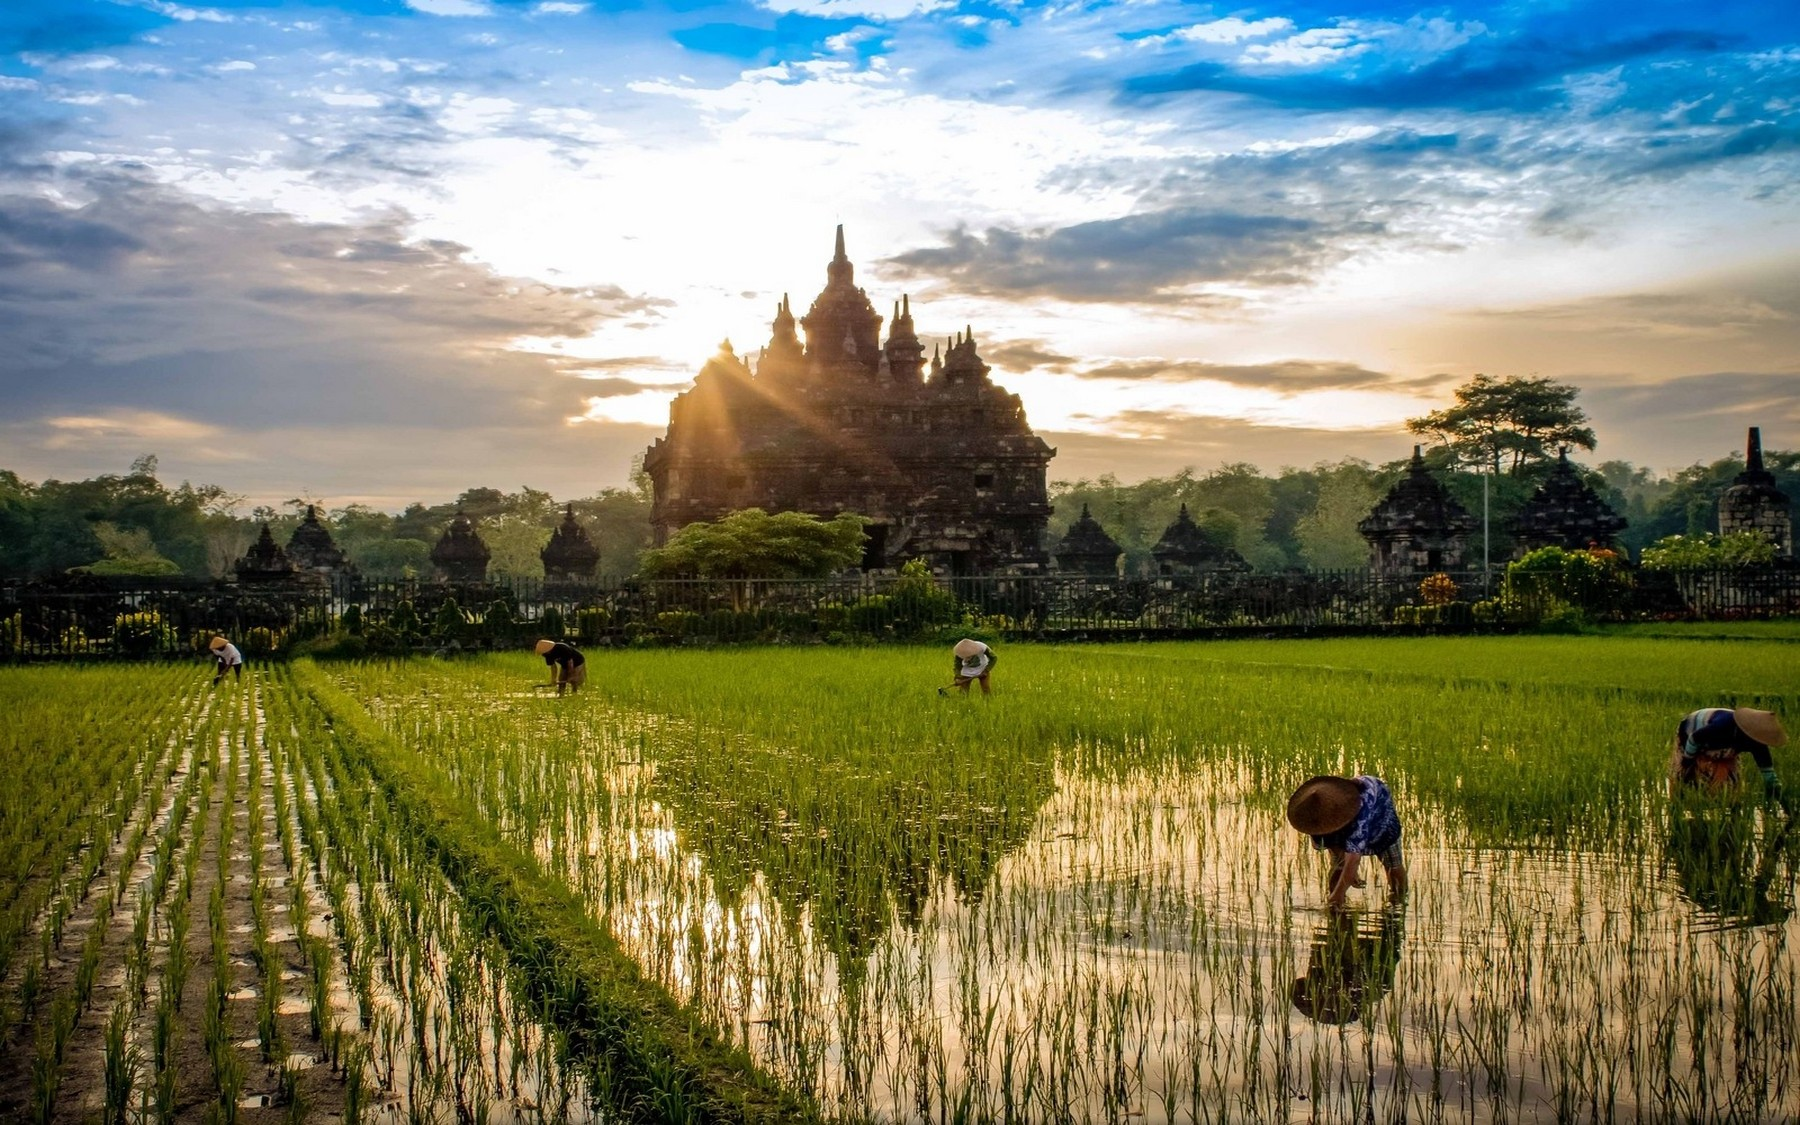 4k Wallpaper 3d National Geographic Nature Landscape Sunrise Rice Paddy Temple Buddhism